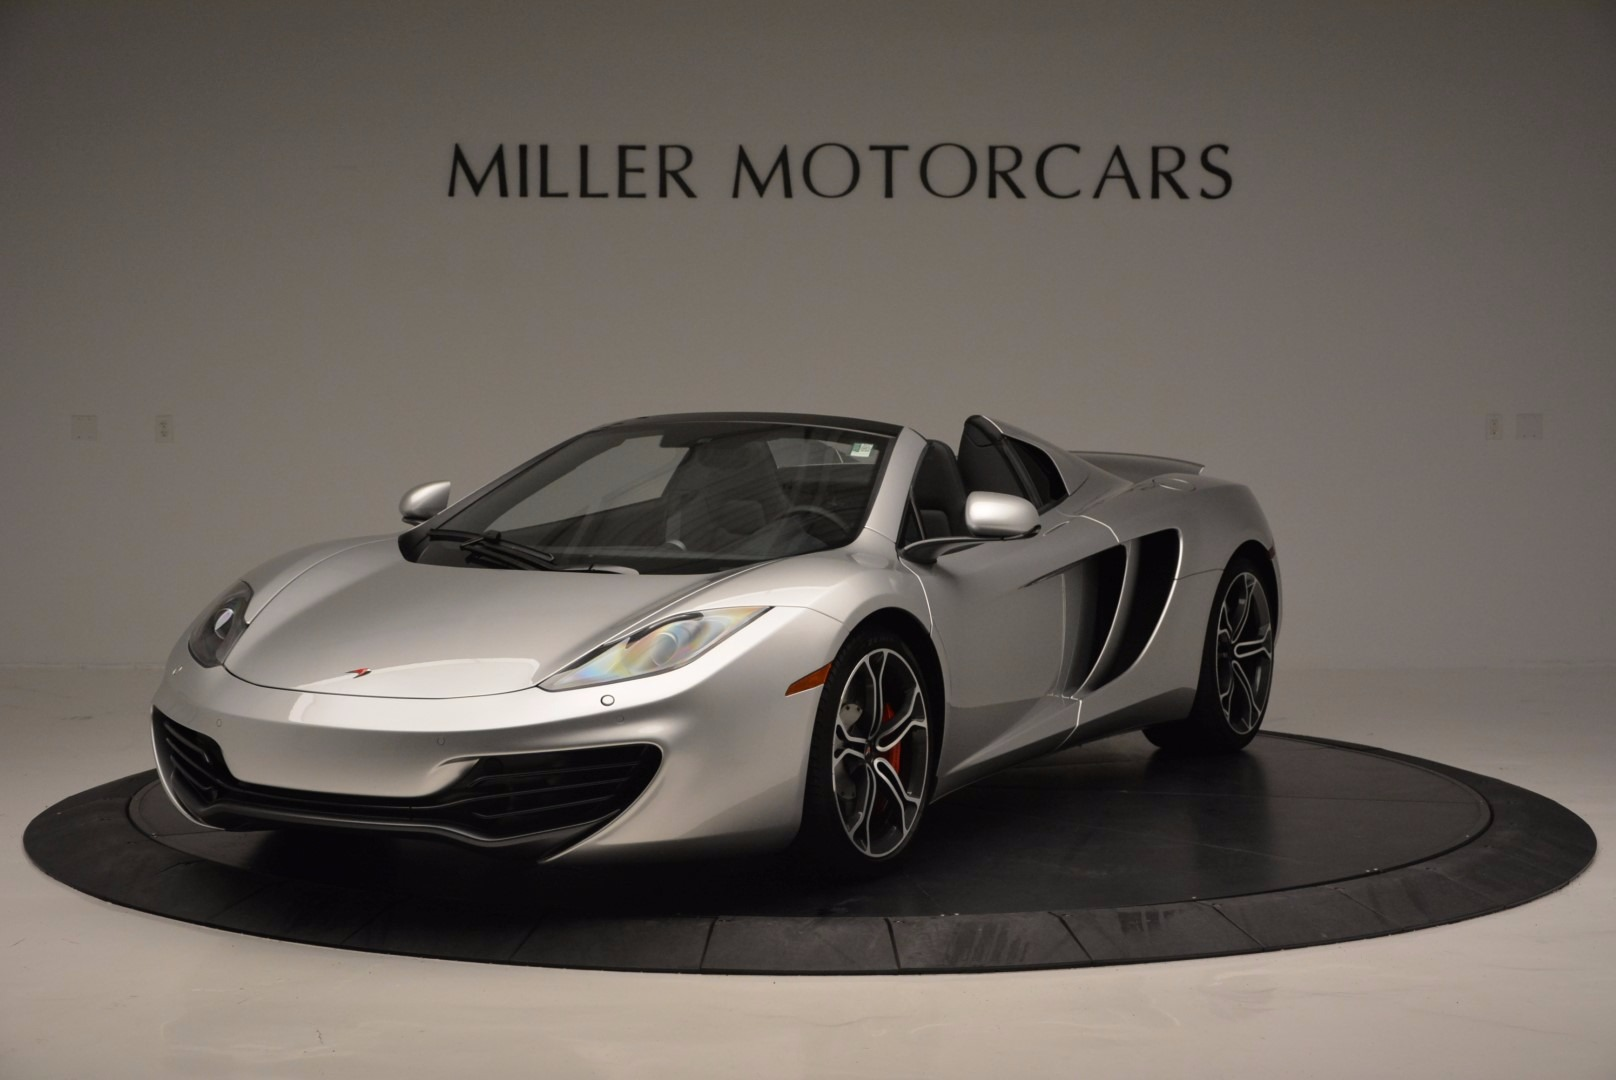 Used 2014 McLaren MP4-12C Spider for sale Sold at Maserati of Westport in Westport CT 06880 1